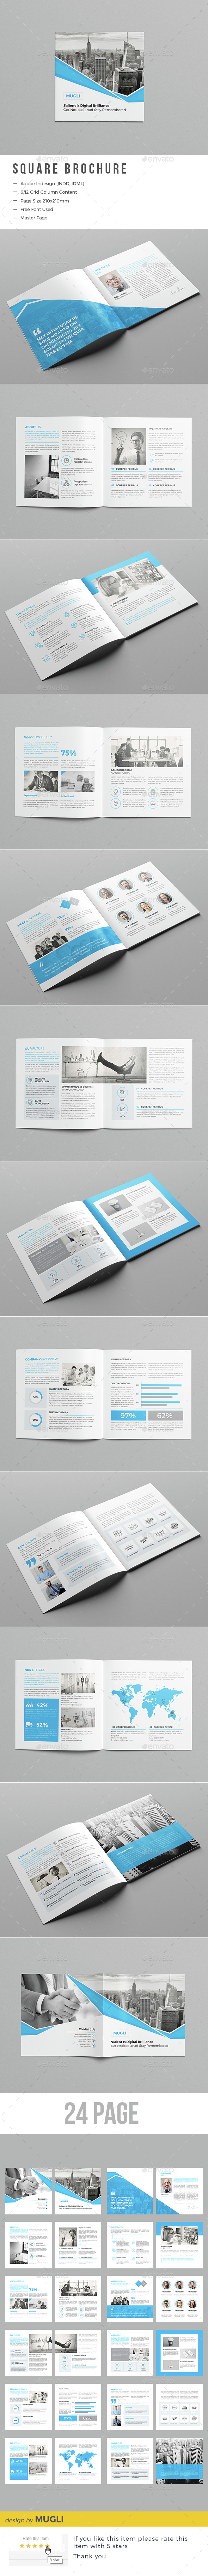 Corporate Square Brochure - Corporate Brochures